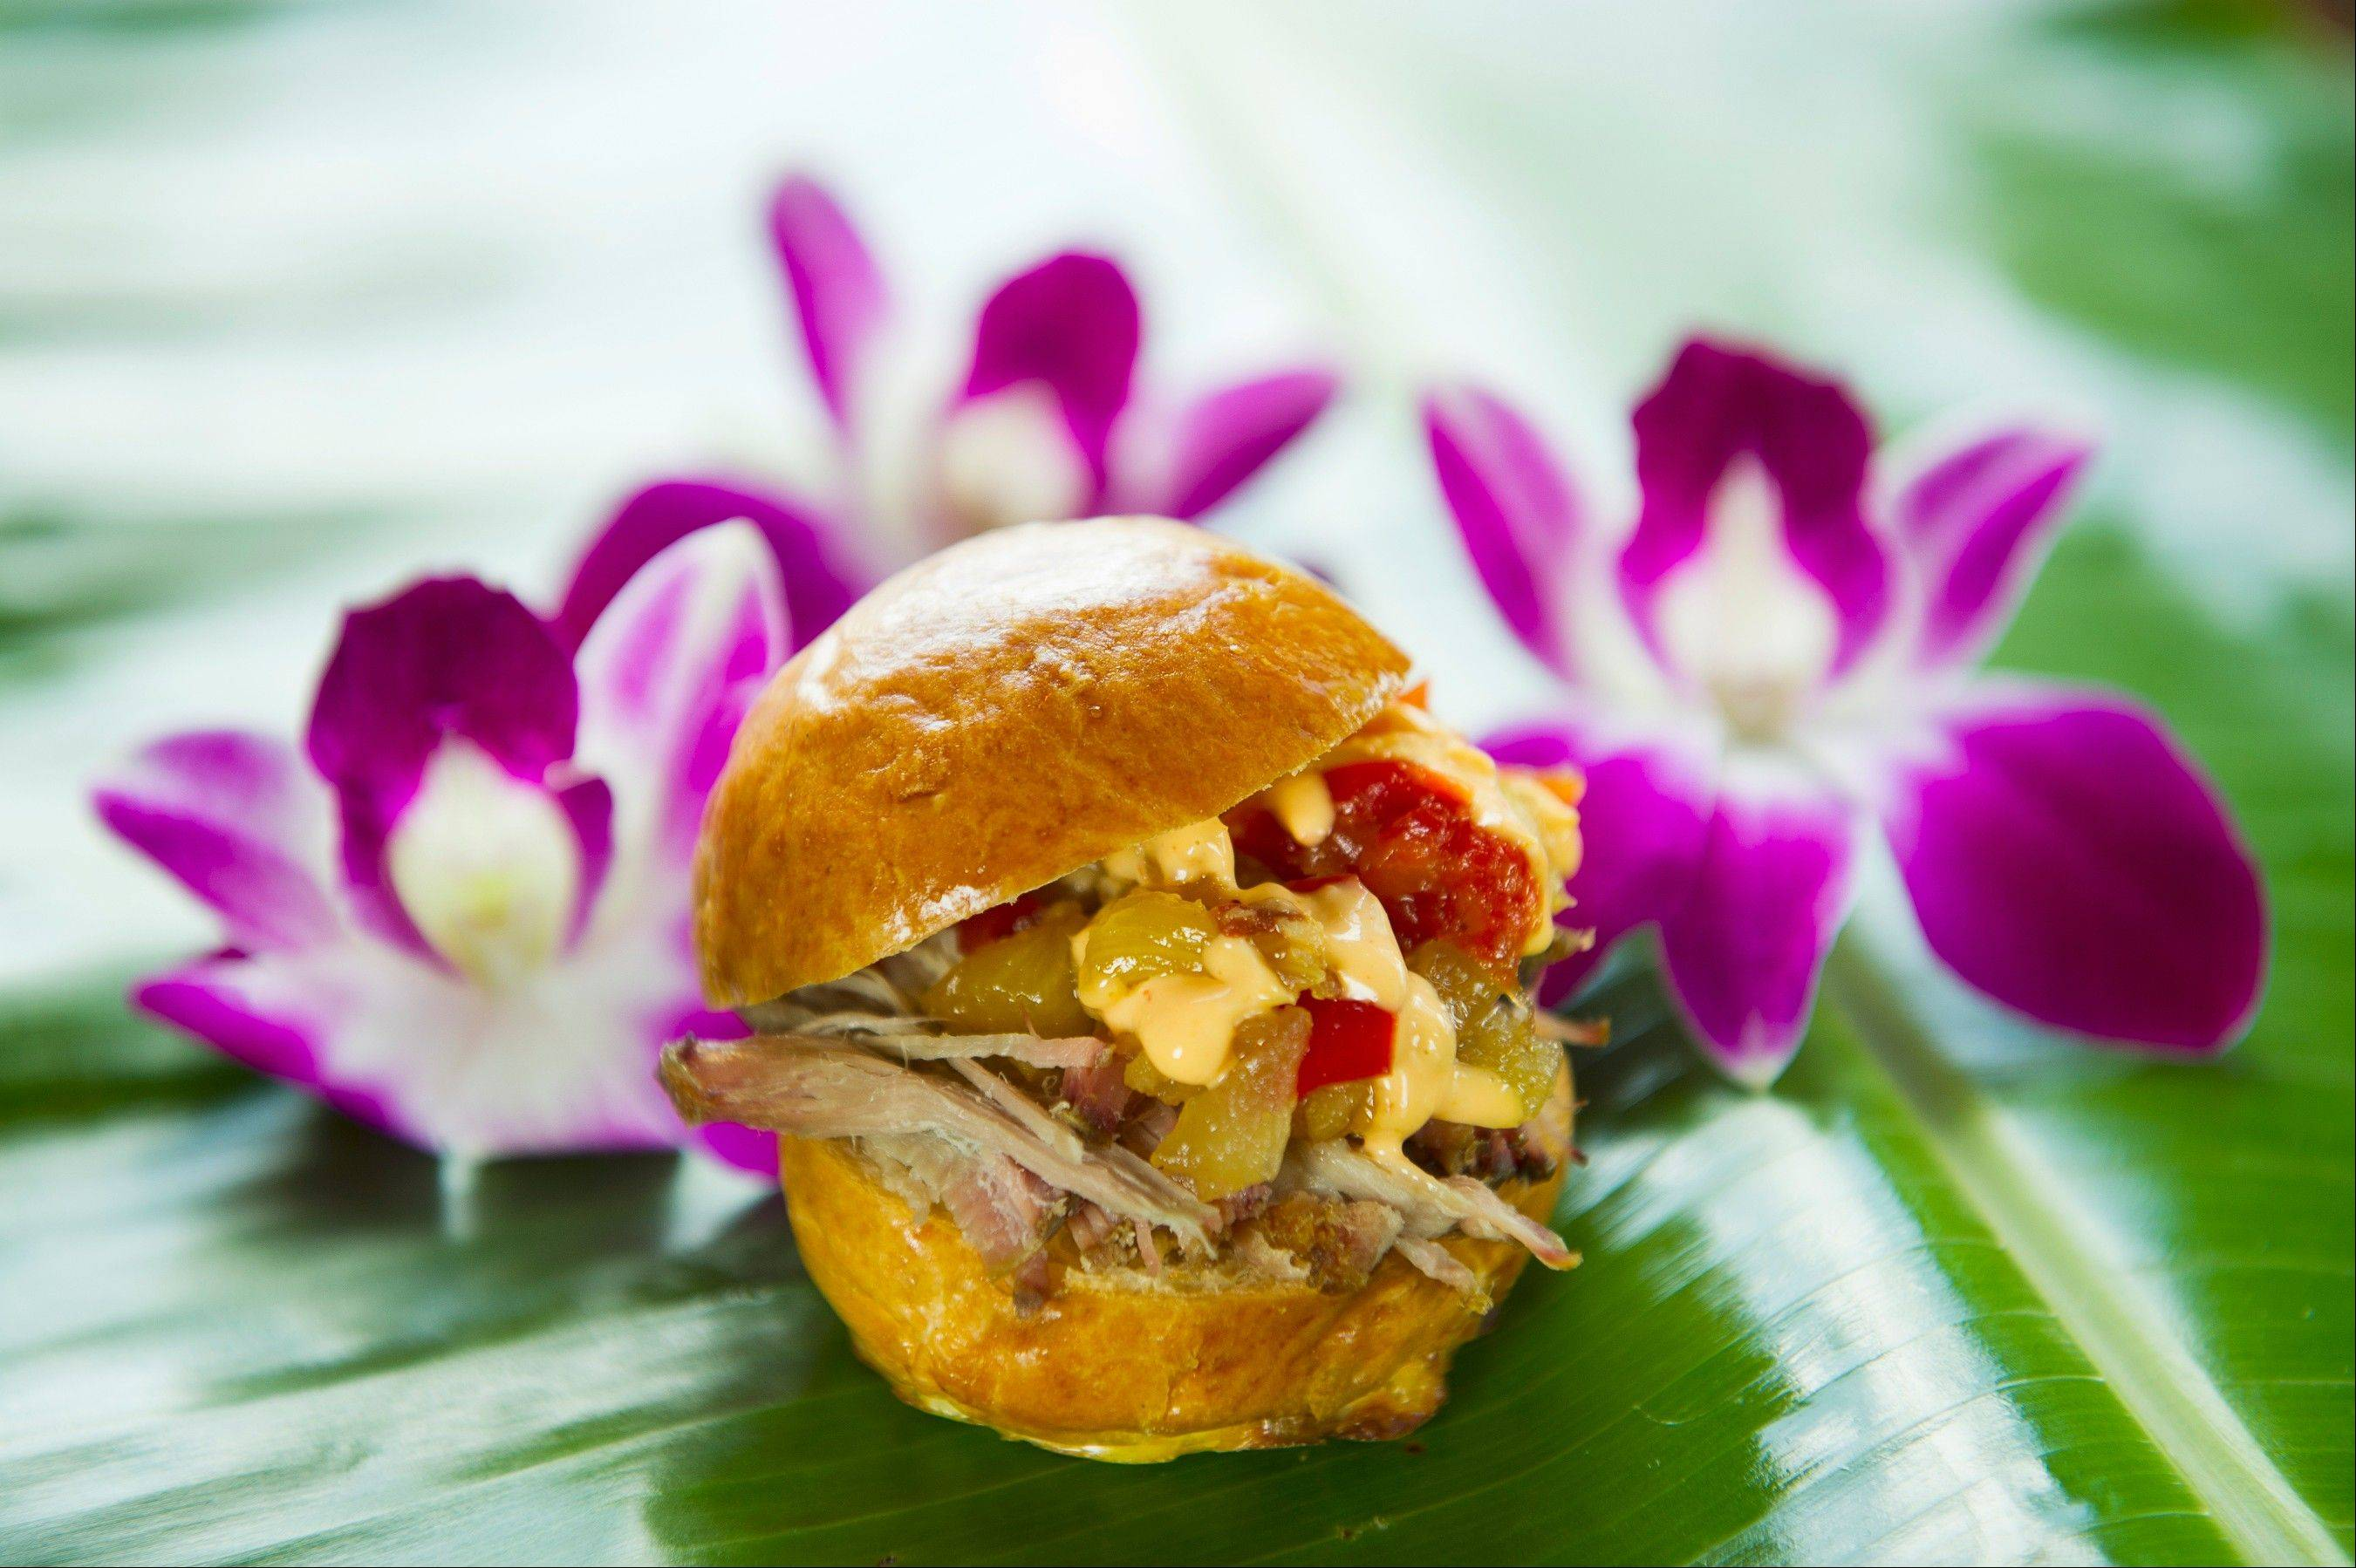 The Kalua Pork Slider (not the liqueur Kahlua but the Kalua barbecue method of cooking) returns to the Hawaii tasting marketplace at the Epcot International Food & Wine Festival running Sept. 28-Nov. 12 at Walt Disney World Resort in Lake Buena Vista, Fla. (Matt Stroshane, photographer)